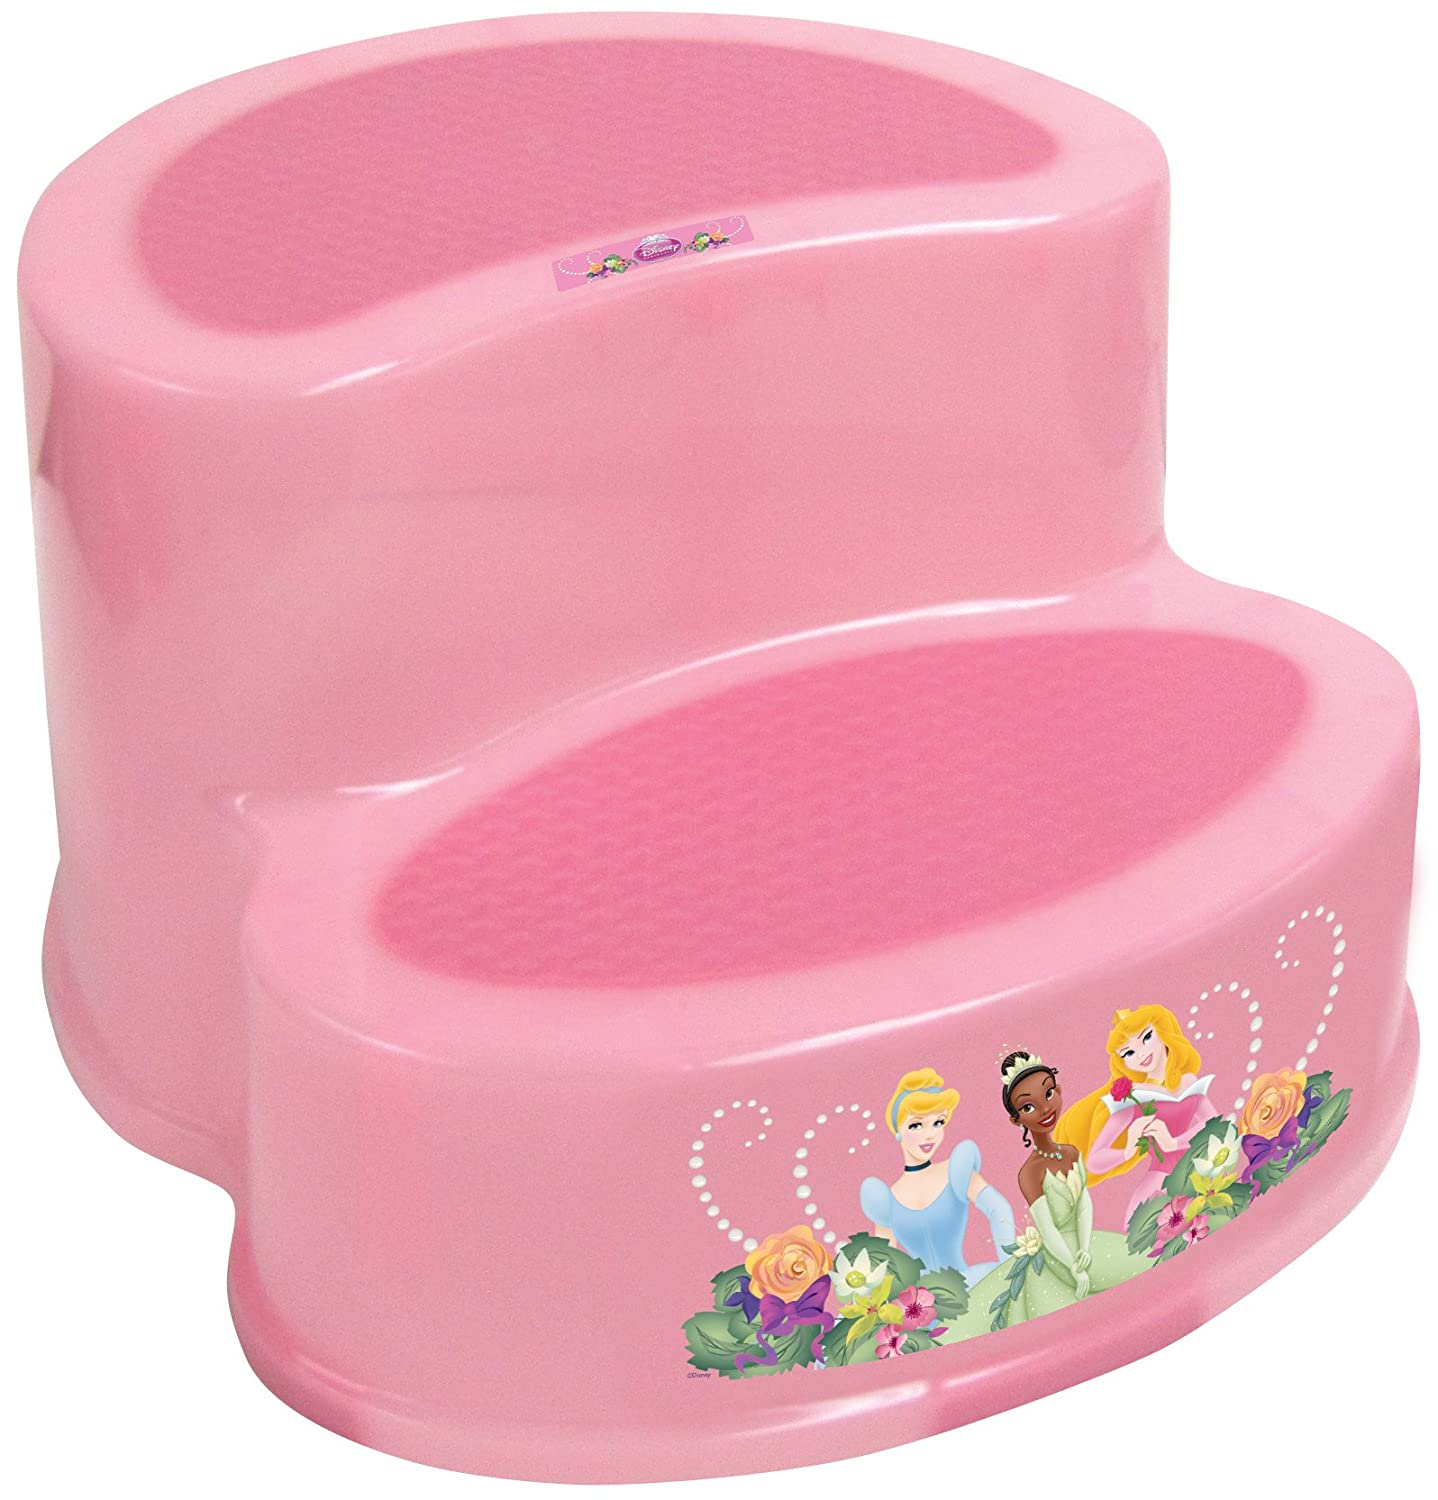 Amazon.com  Disney Princess 2 Tier Step Stool Pink  Toilet Training Step Stools  Baby  sc 1 st  Amazon.com & Amazon.com : Disney Princess 2 Tier Step Stool Pink : Toilet ... islam-shia.org